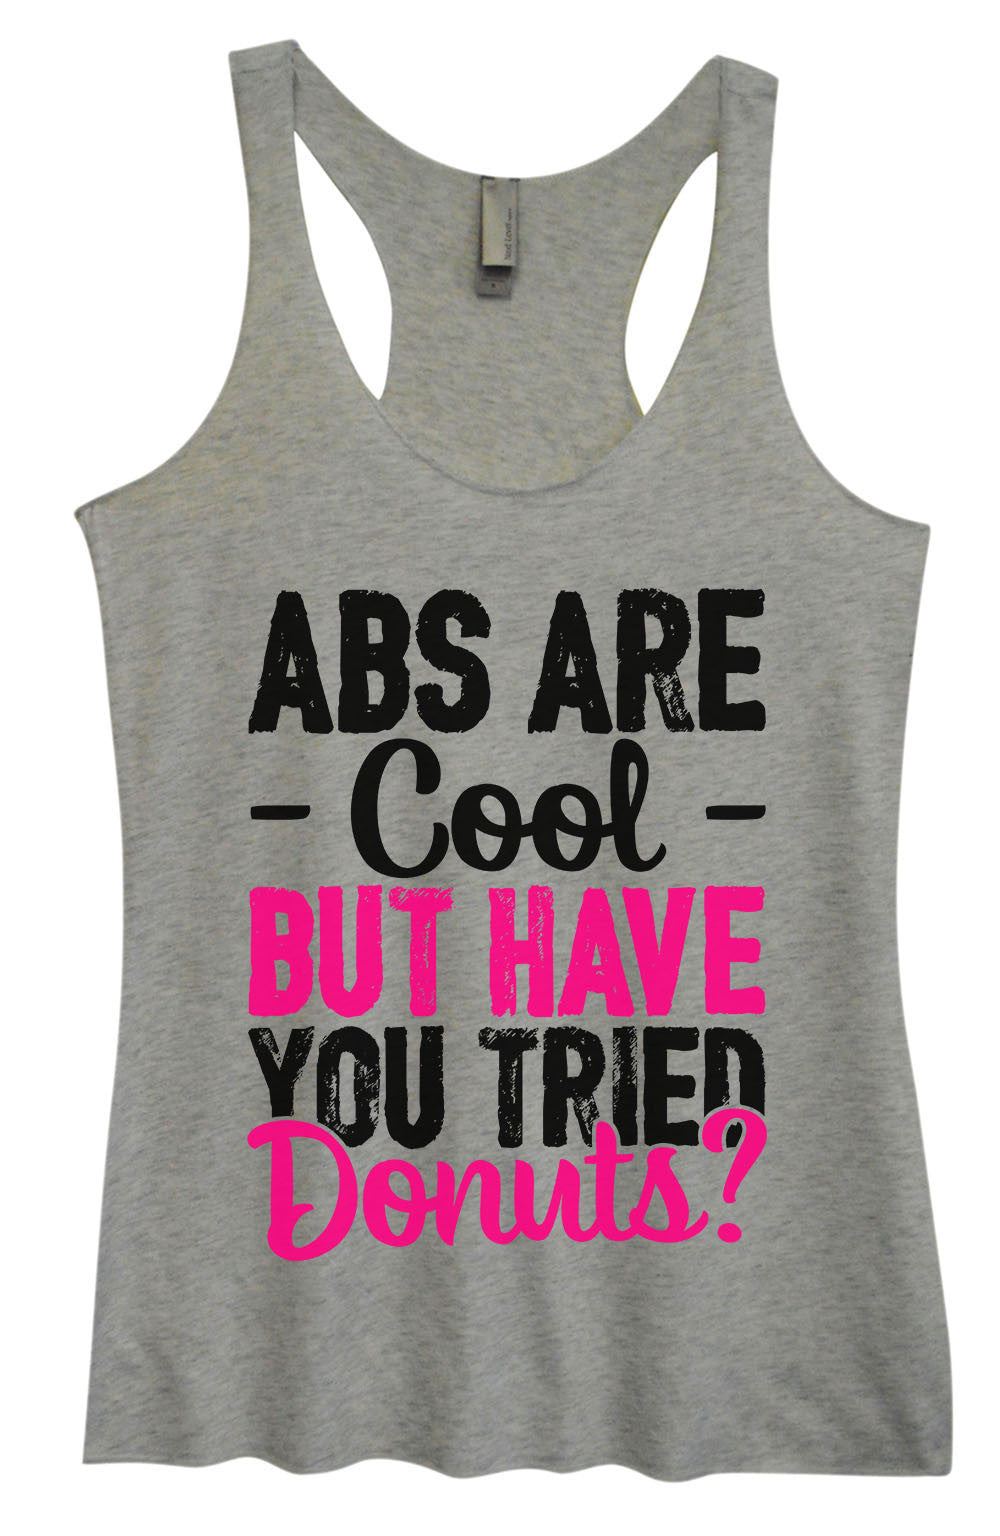 Womens Fashion Triblend Tank Top - ABS Are - Cool - But Have You Tried Donuts? - Tri-1401 - Funny Shirts Tank Tops Burnouts and Triblends  - 2